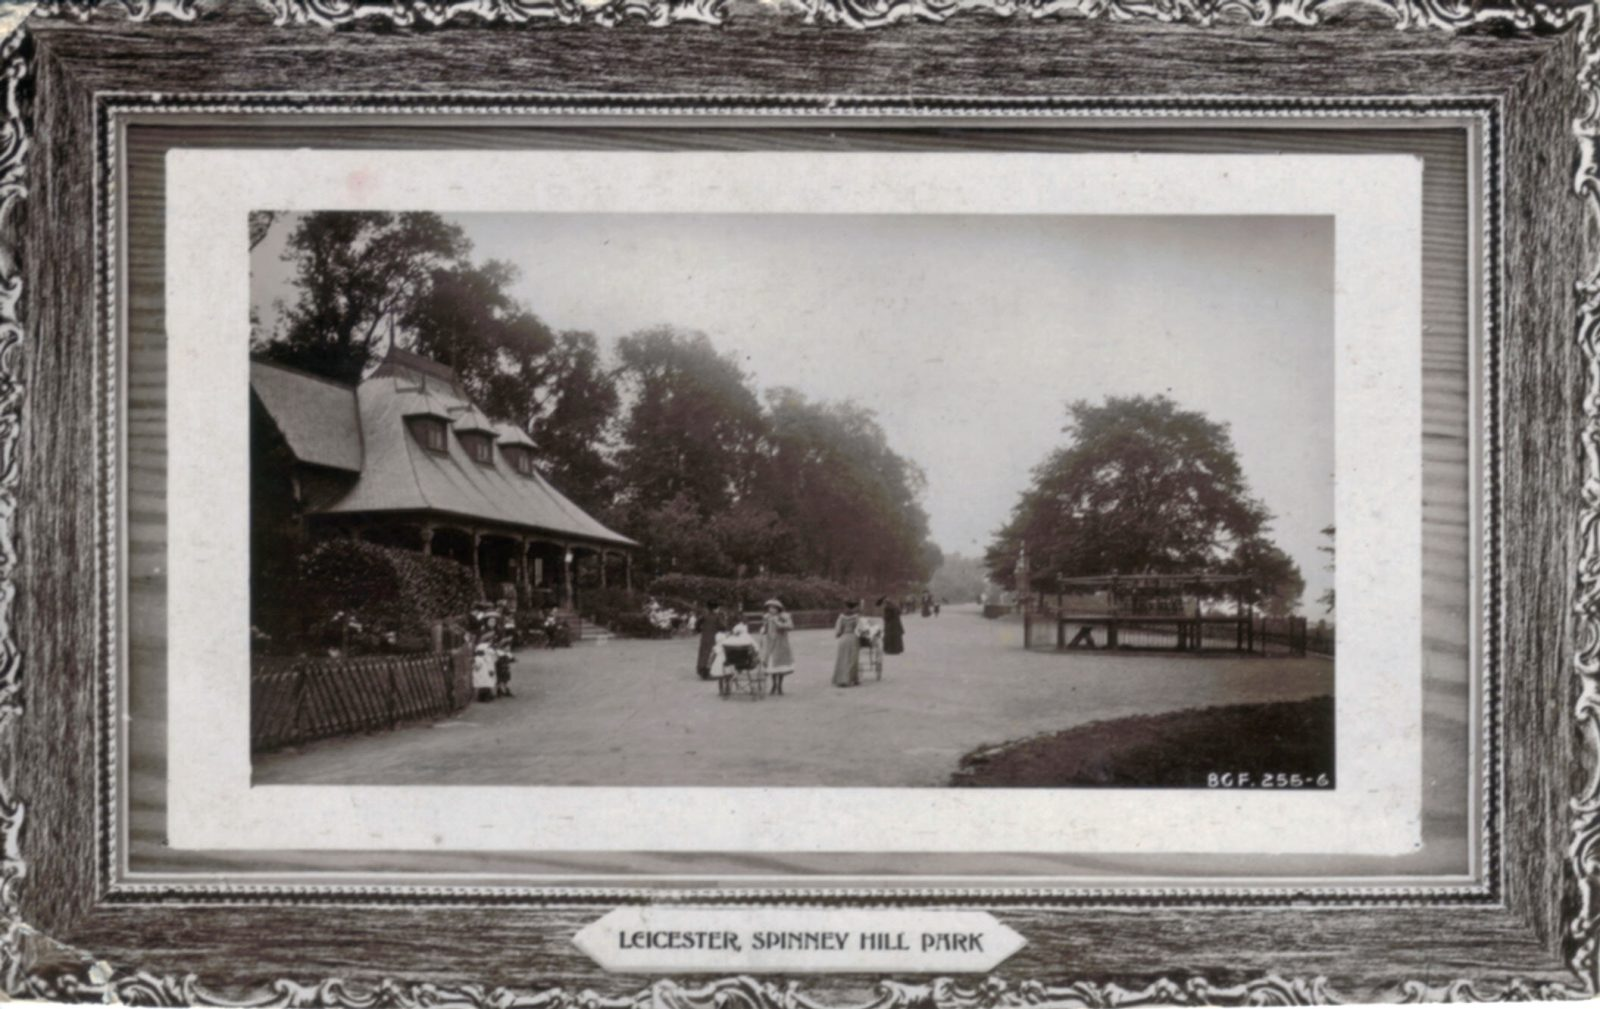 Spinney Hill Park, Leicester. 1901-1920: The Pavilion. Adults with prams and children on broad avenue. (File:1058)